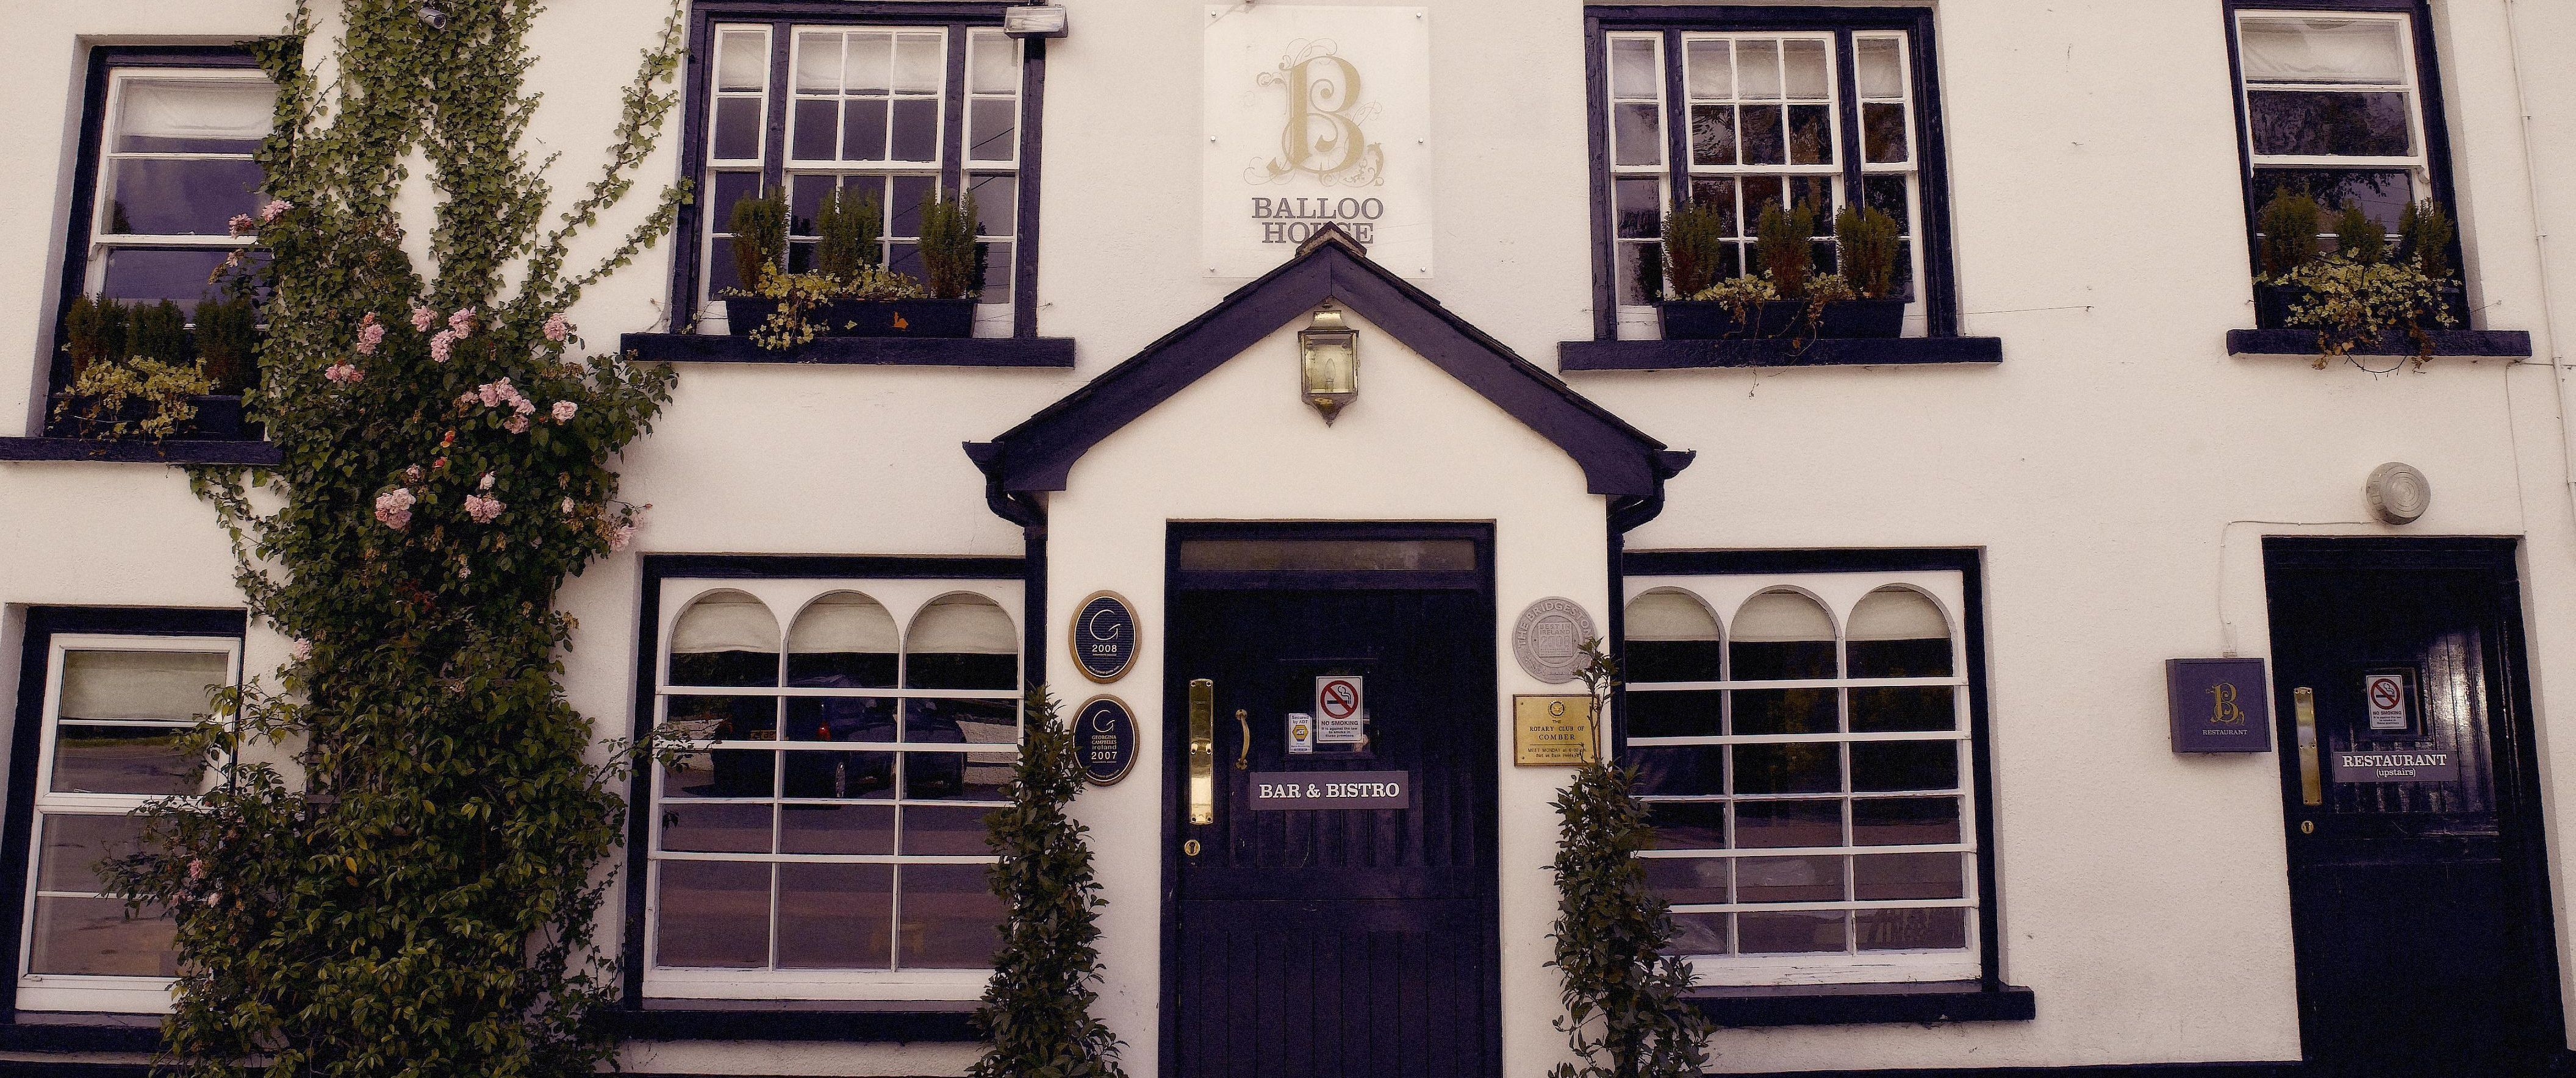 Balloo House, Killinchy - Readers' Restaurant of the Year for Northern Ireland